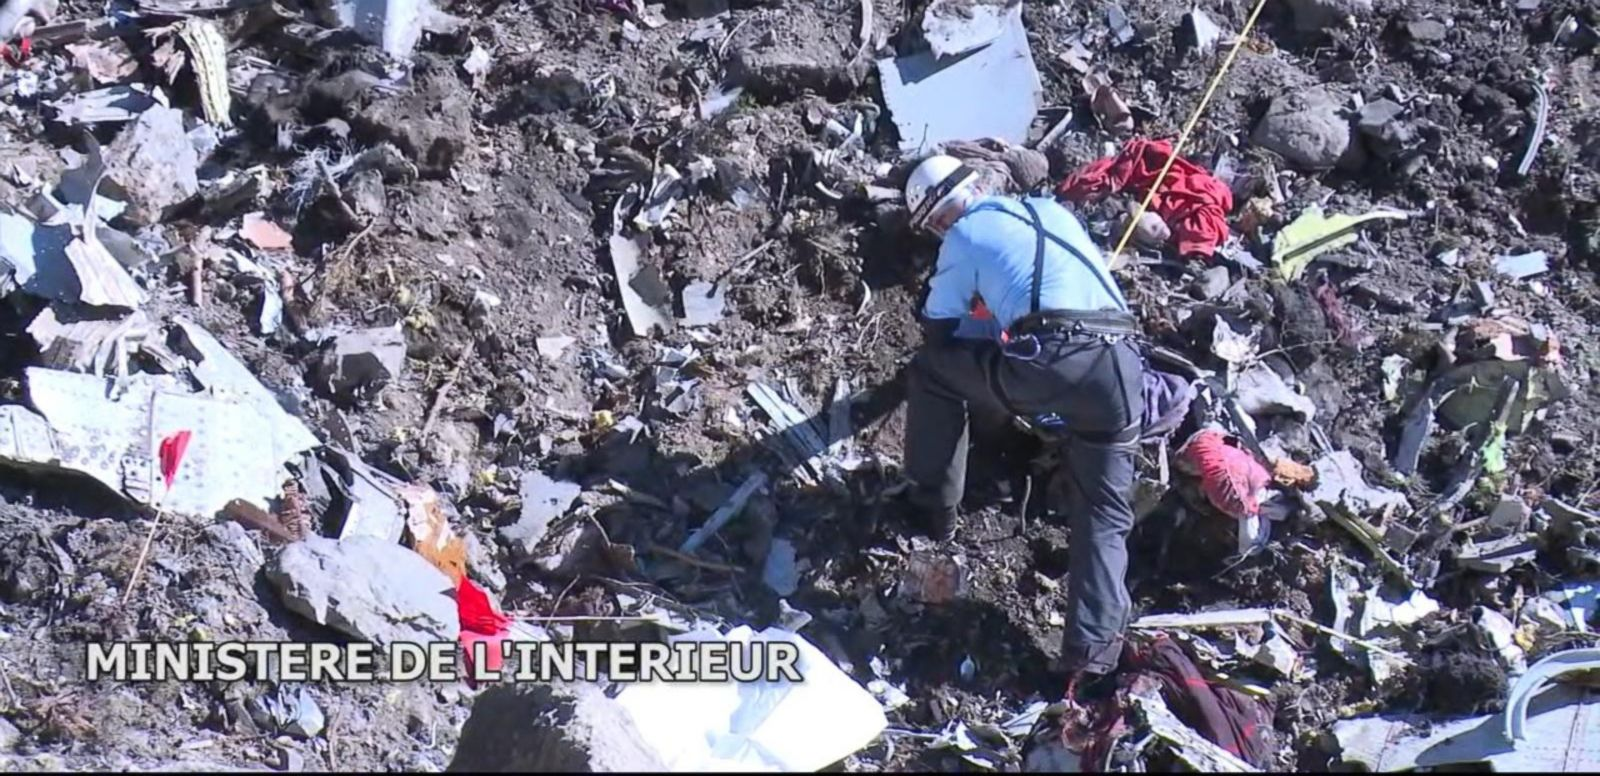 VIDEO: What Motivated Andreas Lubitz To Crash the Germanwings Jetliner